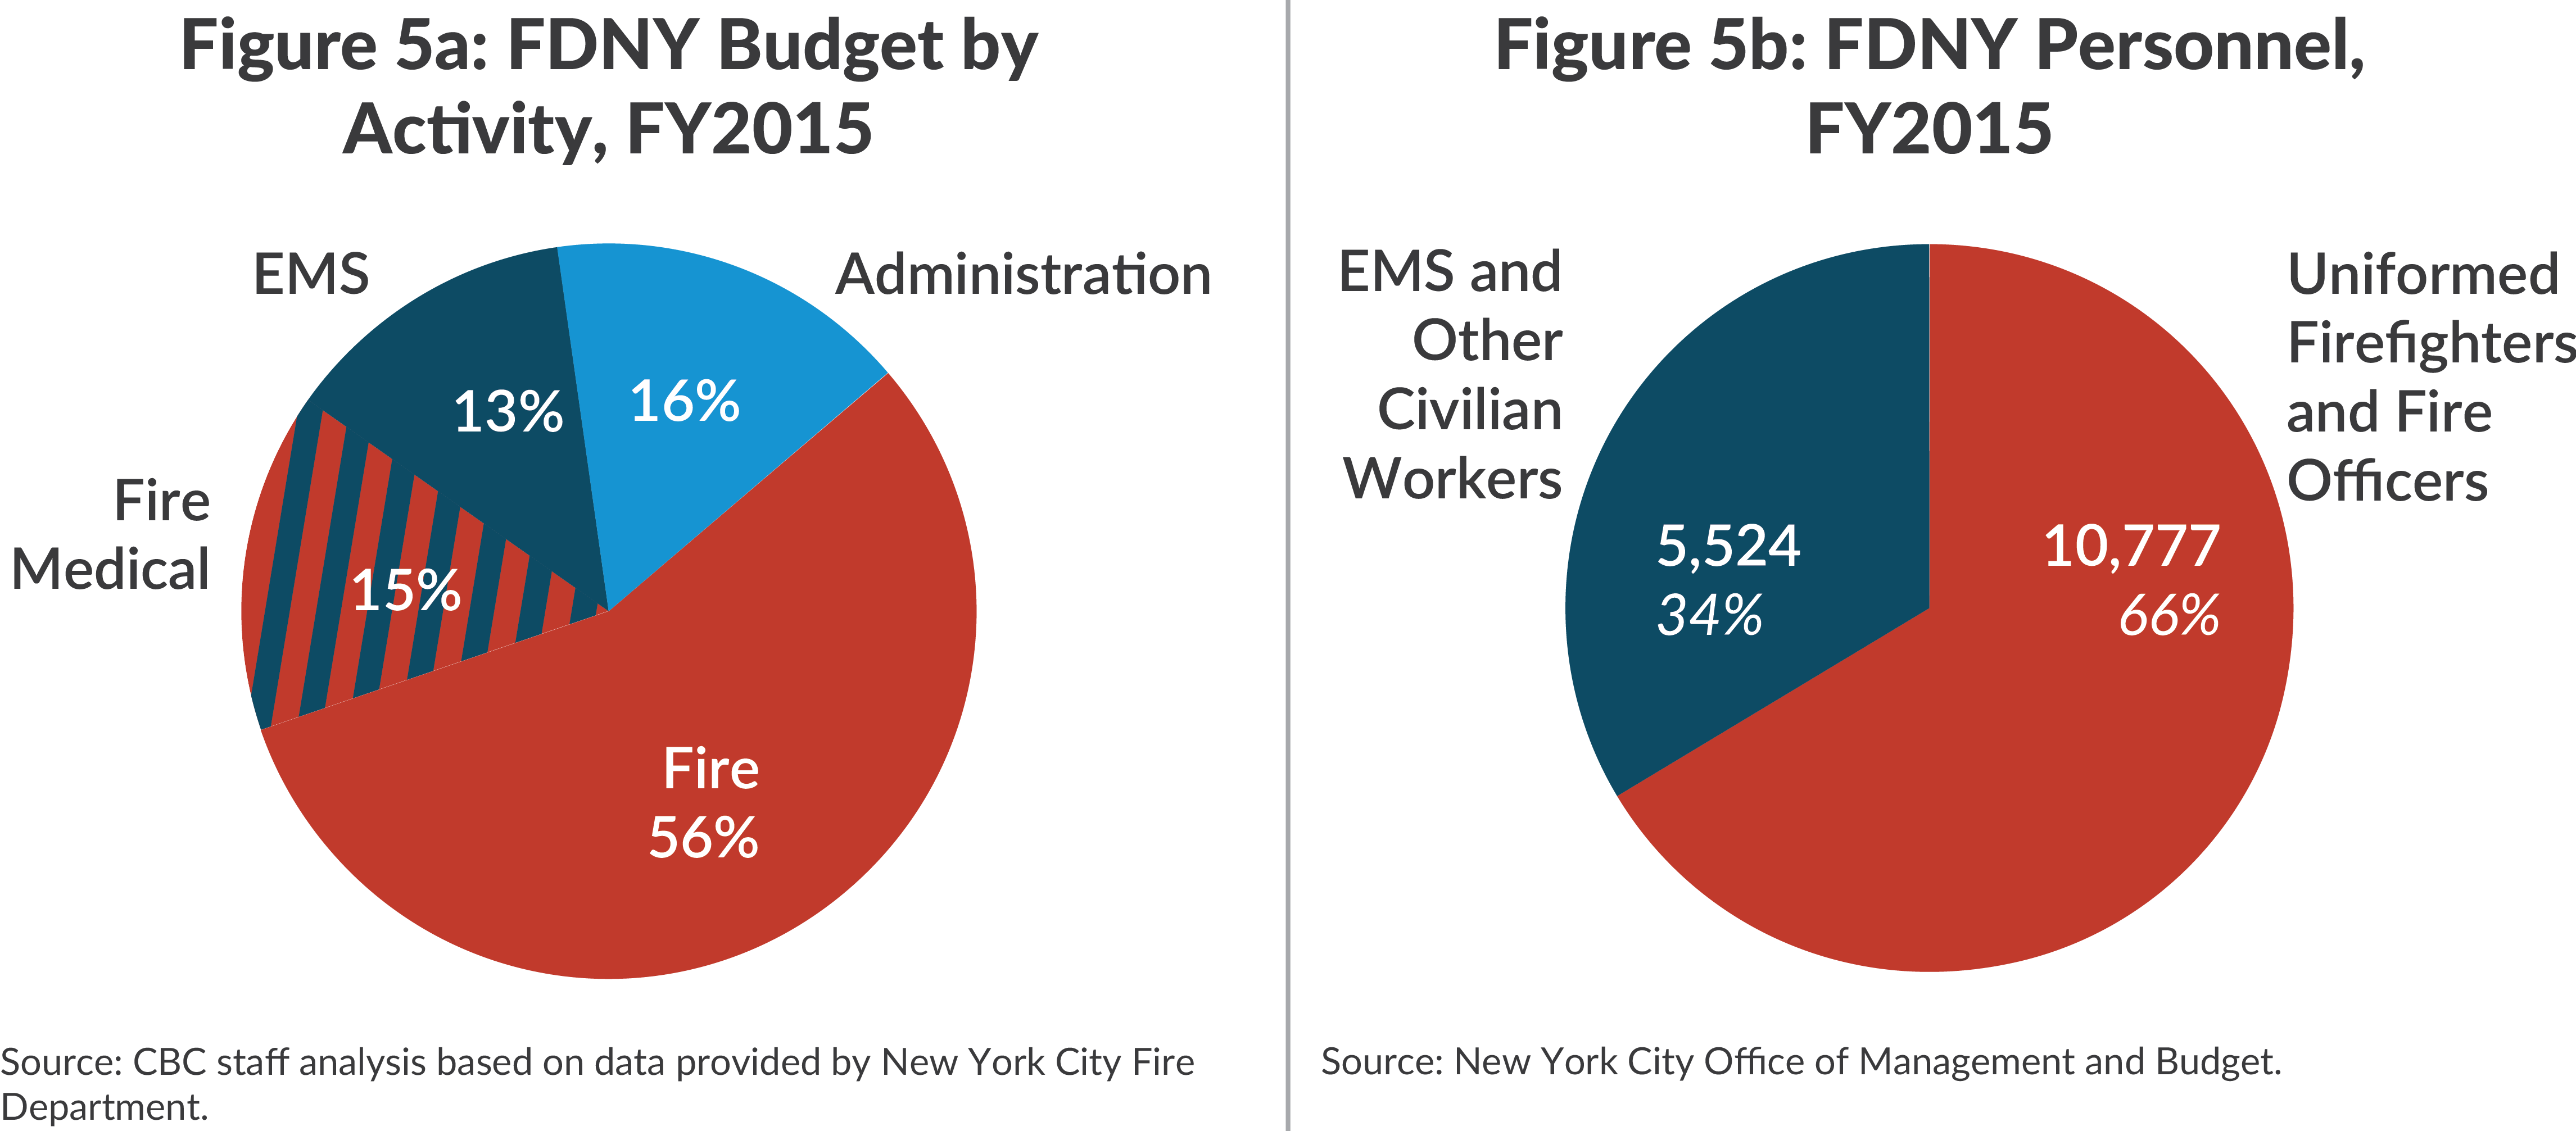 Figure 5a: FDNY Budget by Activity, FY2015 | Figure 5b: FDNY Personnel, FY2015